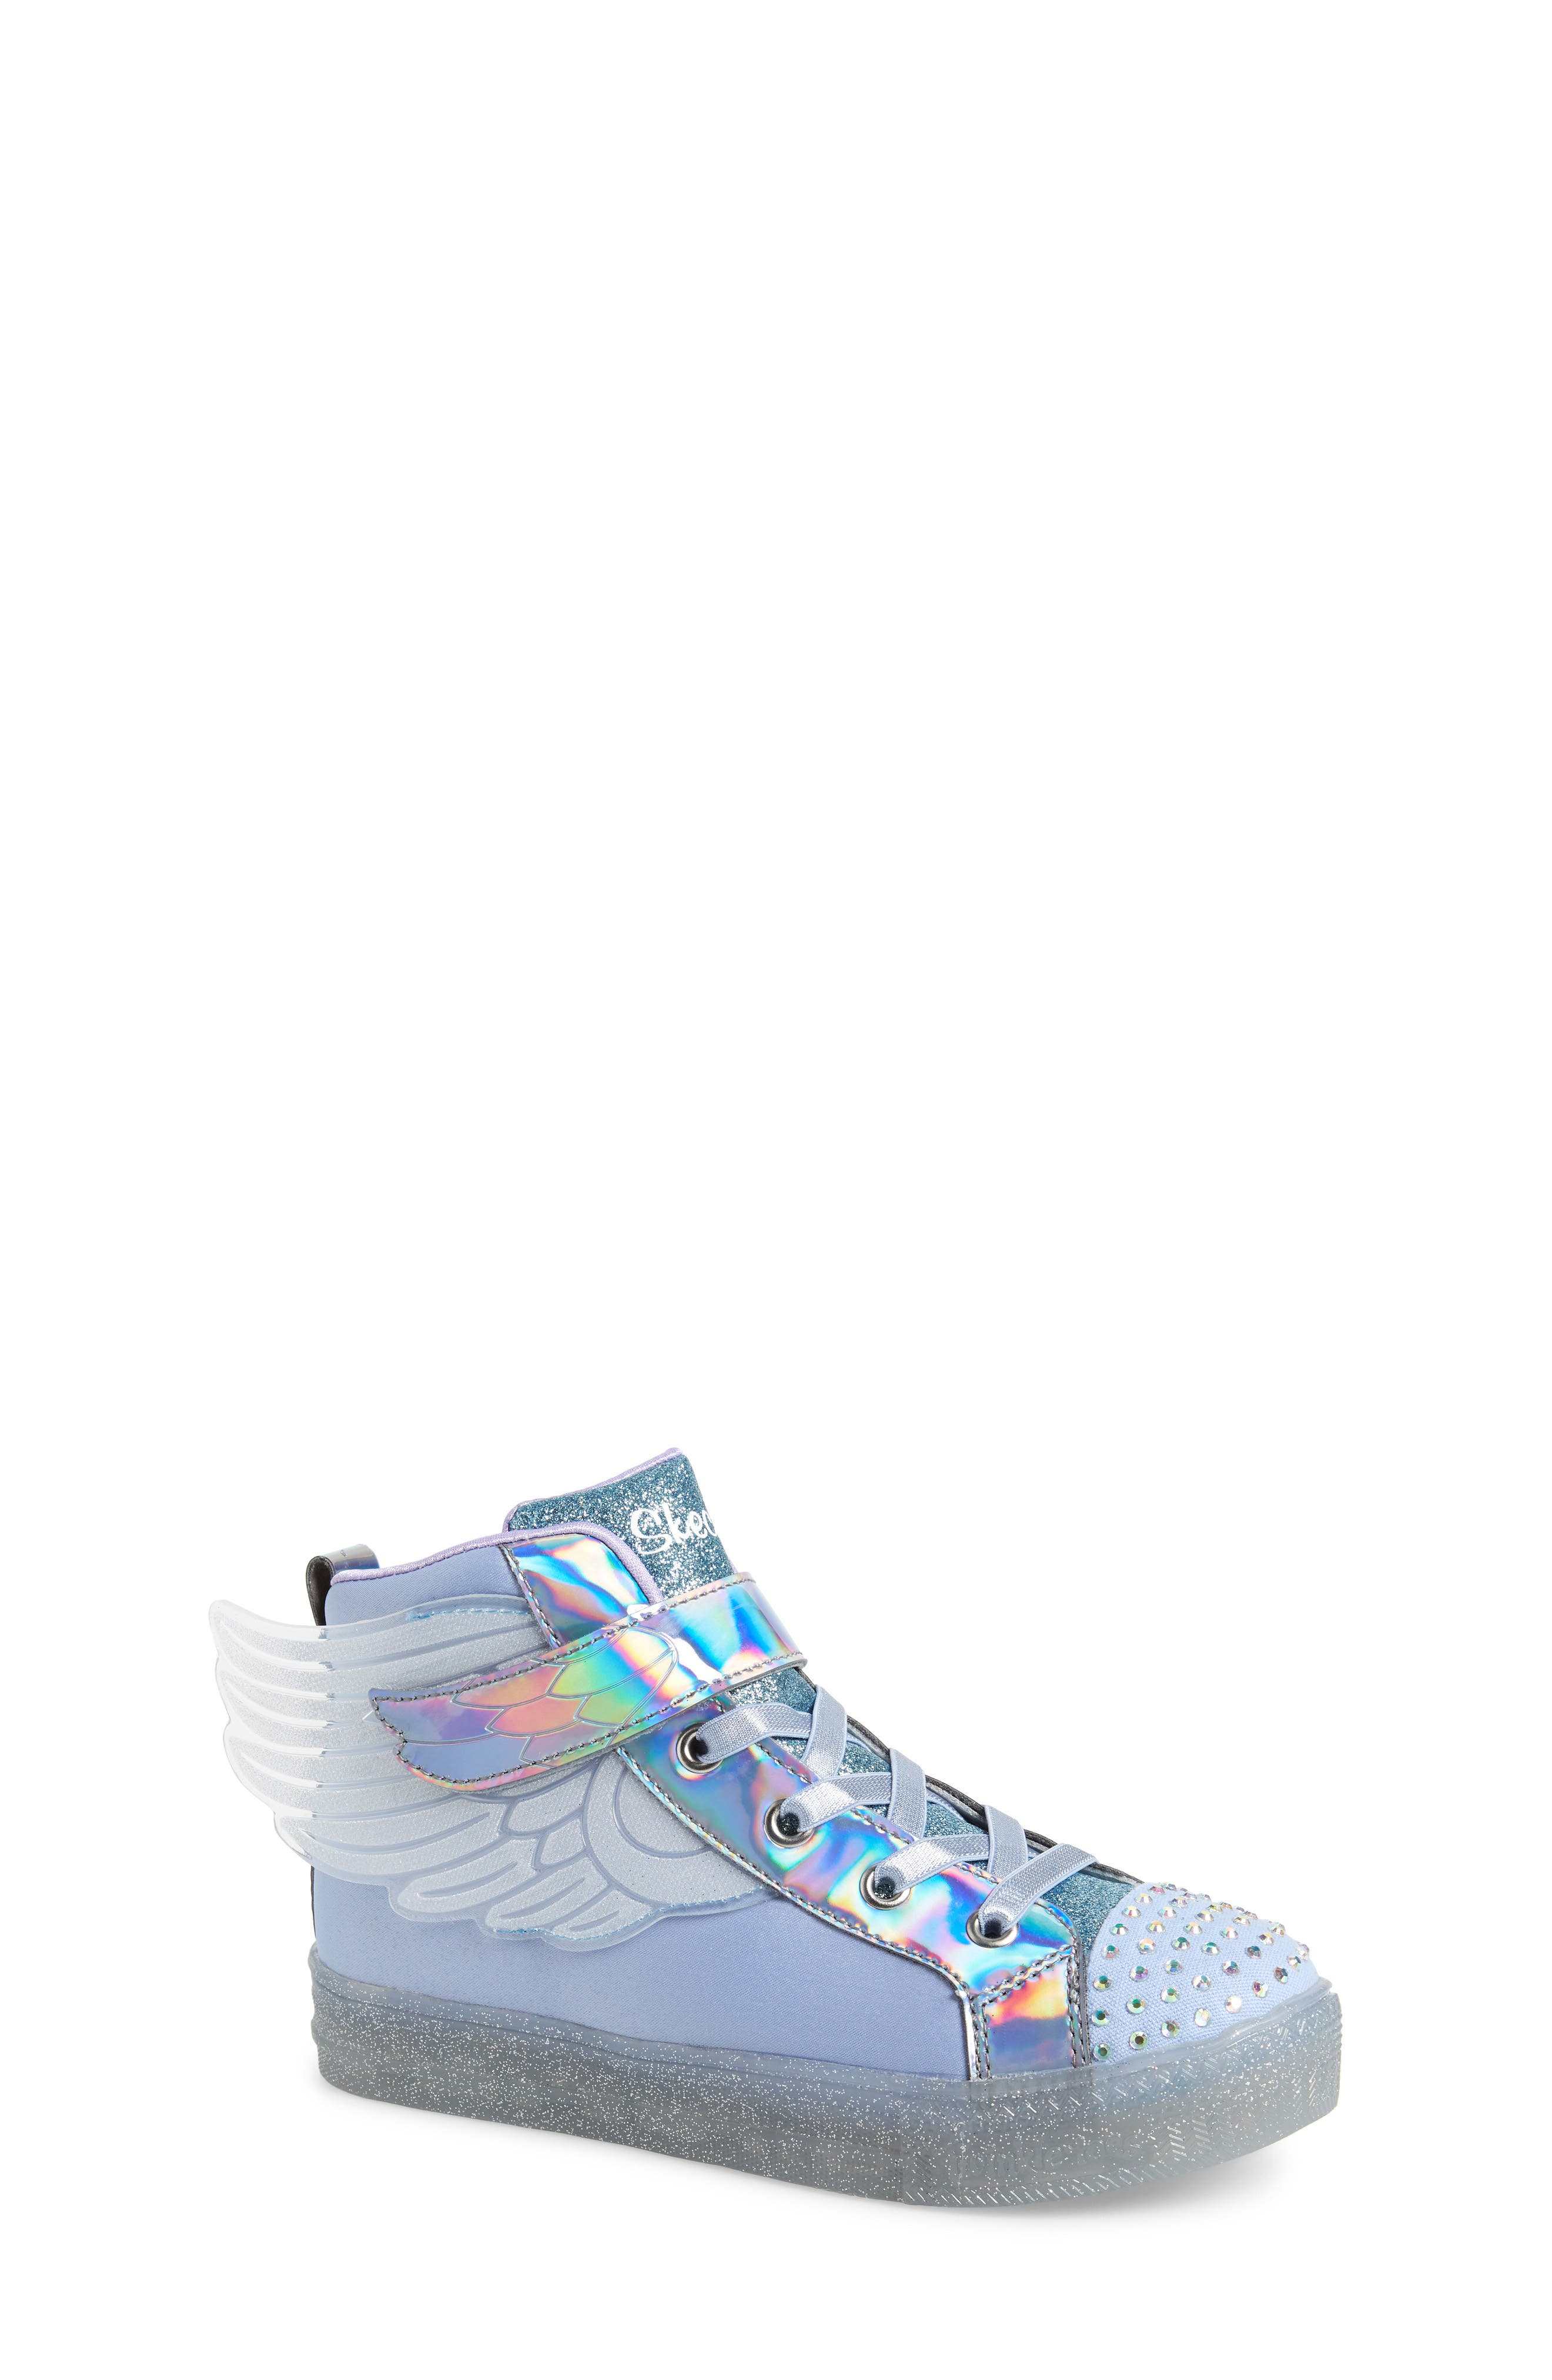 Twinkle Toes Light-Up Sneaker, Main, color, PERIWINKLE